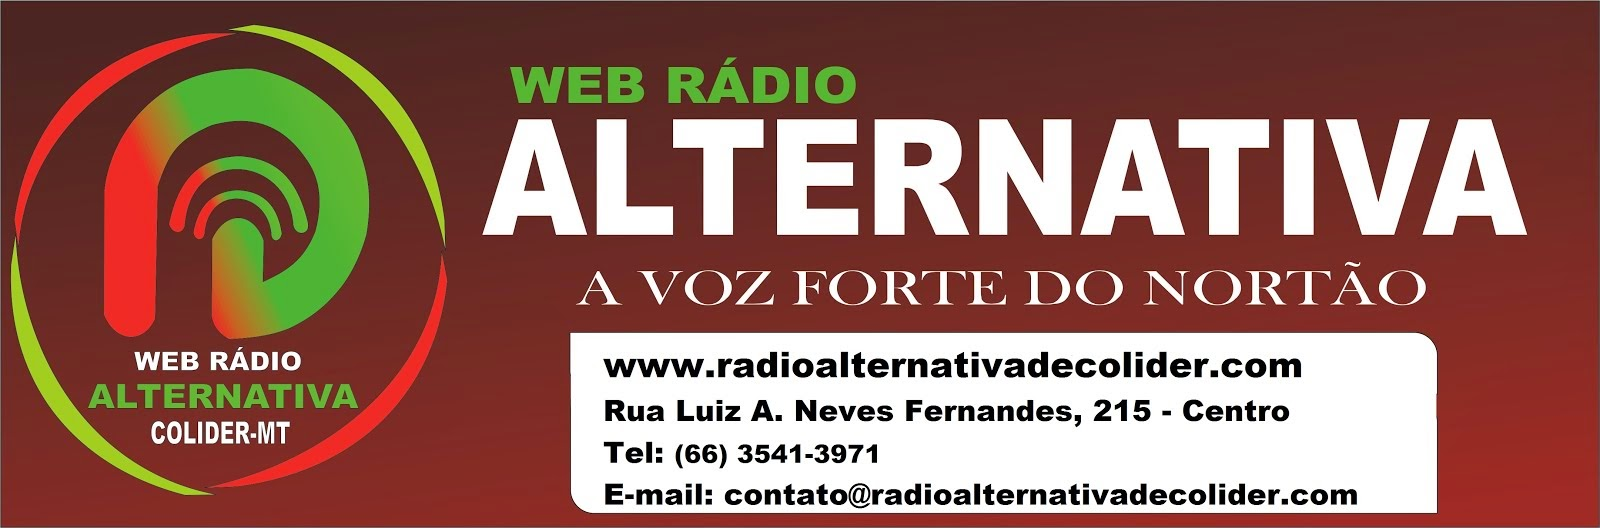 WEB RADIO ALTERNATIVA